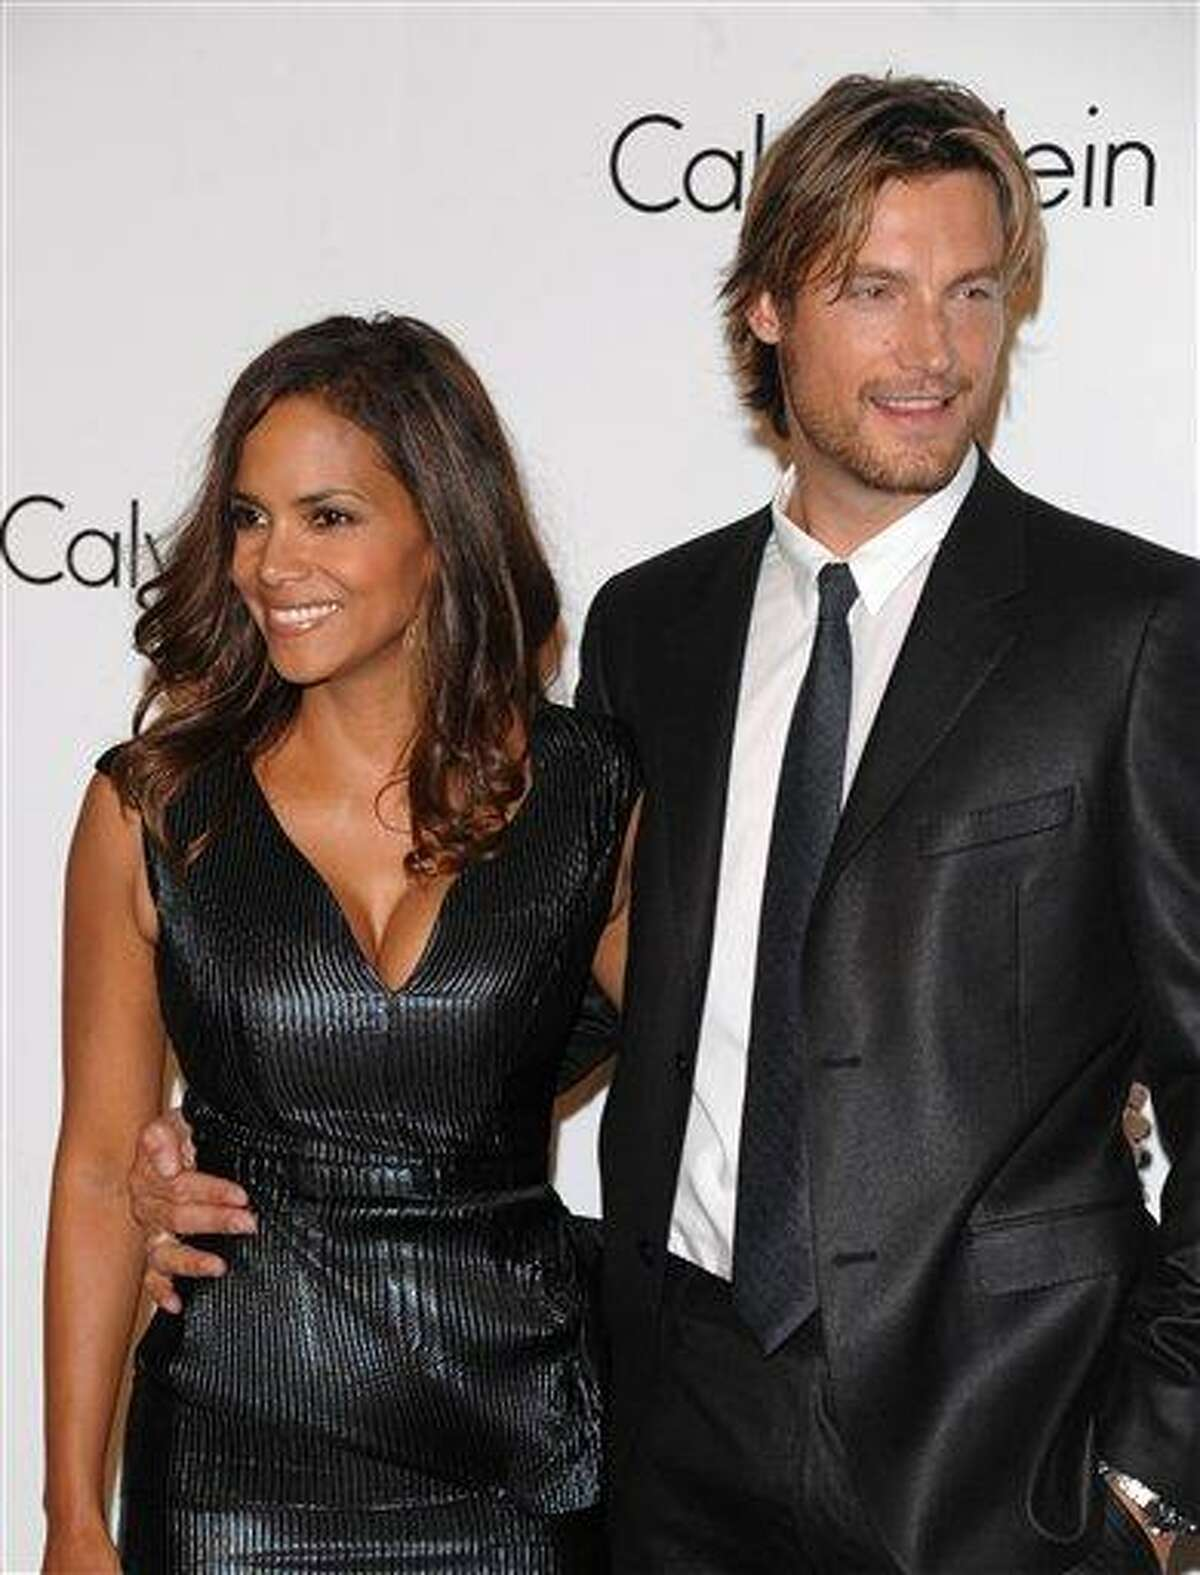 Model Gabriel Aubry and actress Halle Berry attend the Calvin Klein 40th anniversary party during Fashion Week in New York in 2008. Berry's ex-boyfriend Aubry was arrested for investigation of battery after he and the Oscar-winning actress' current boyfriend got into a fight at her California home, police said Thursday. Associated Press file photo